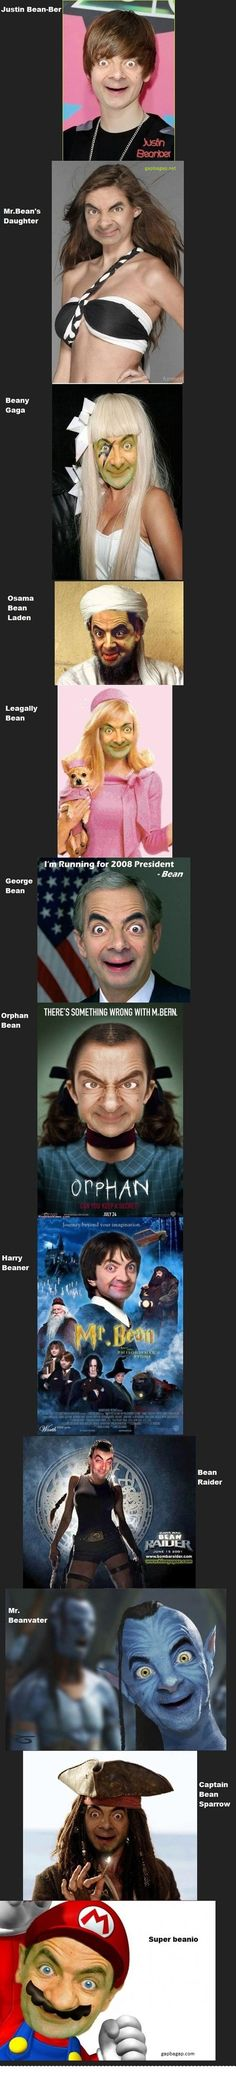 Funny Pictures Of Mr. Bean ft. Justin Bieber, Lady Gaga And Super Mario